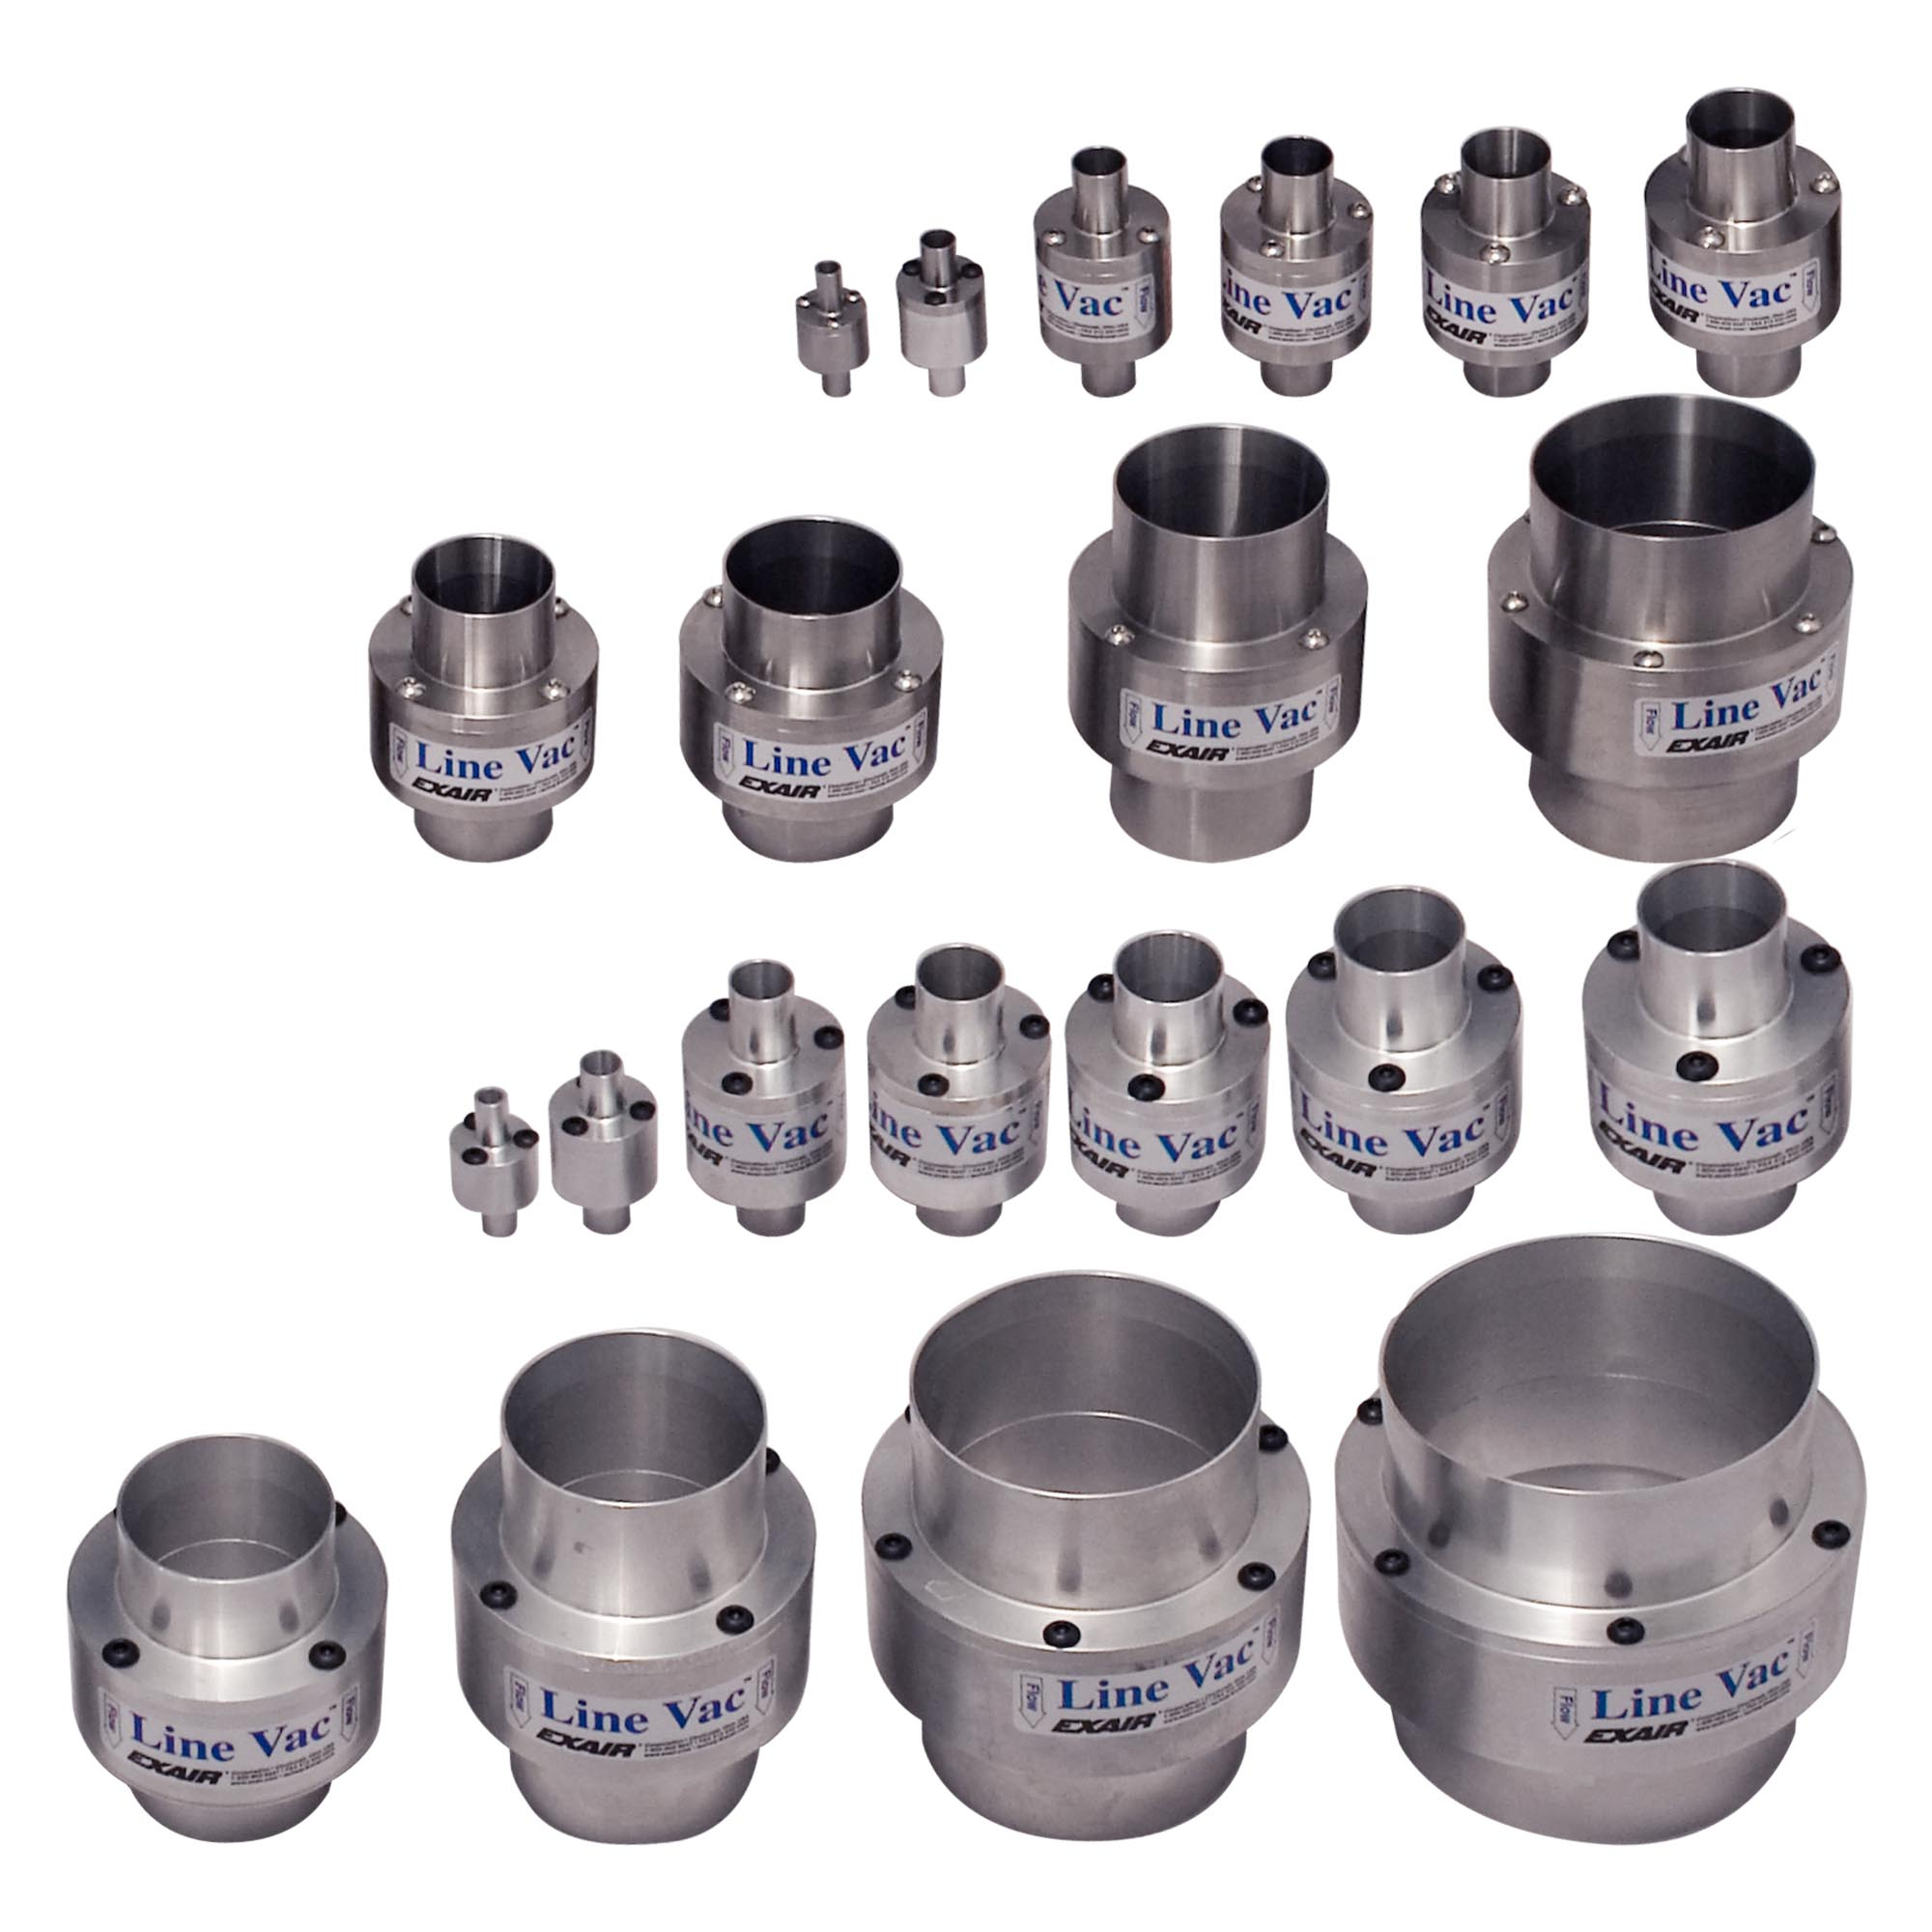 Line Vacs are available in many sizes both in aluminum and stainless steel.